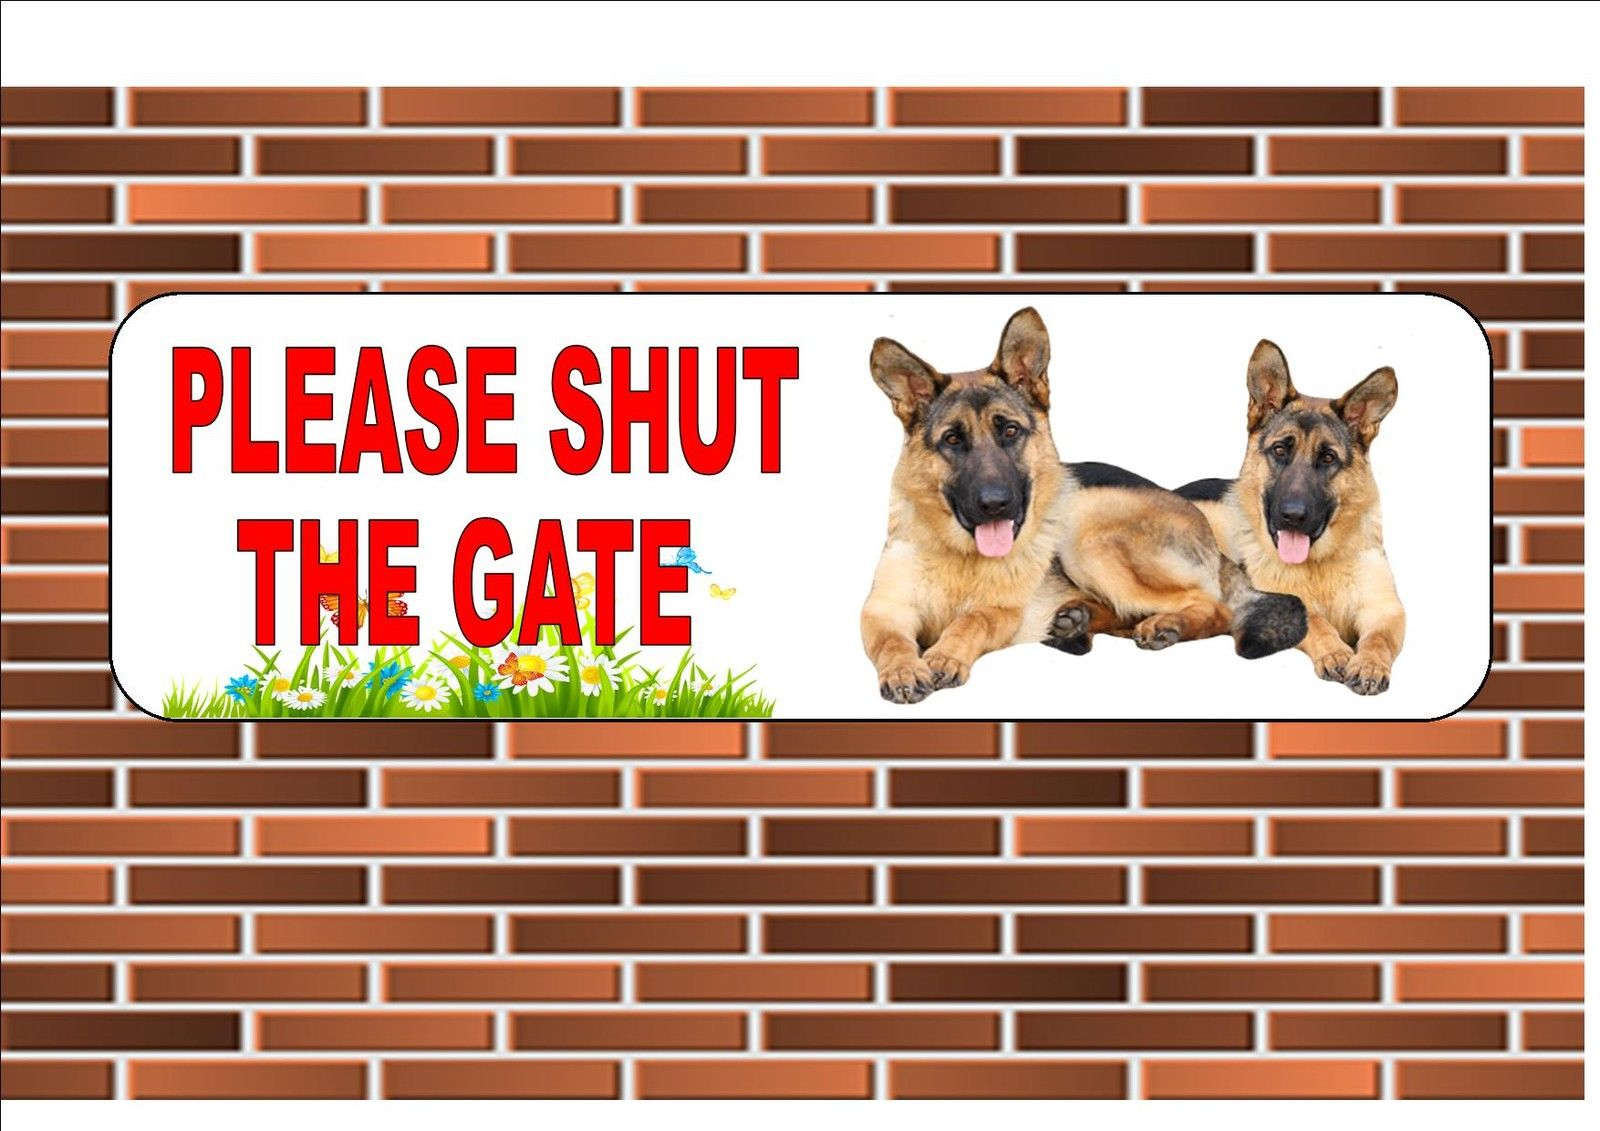 German Shepherd Shut The Gate Beware of the Dog  Gate Sign